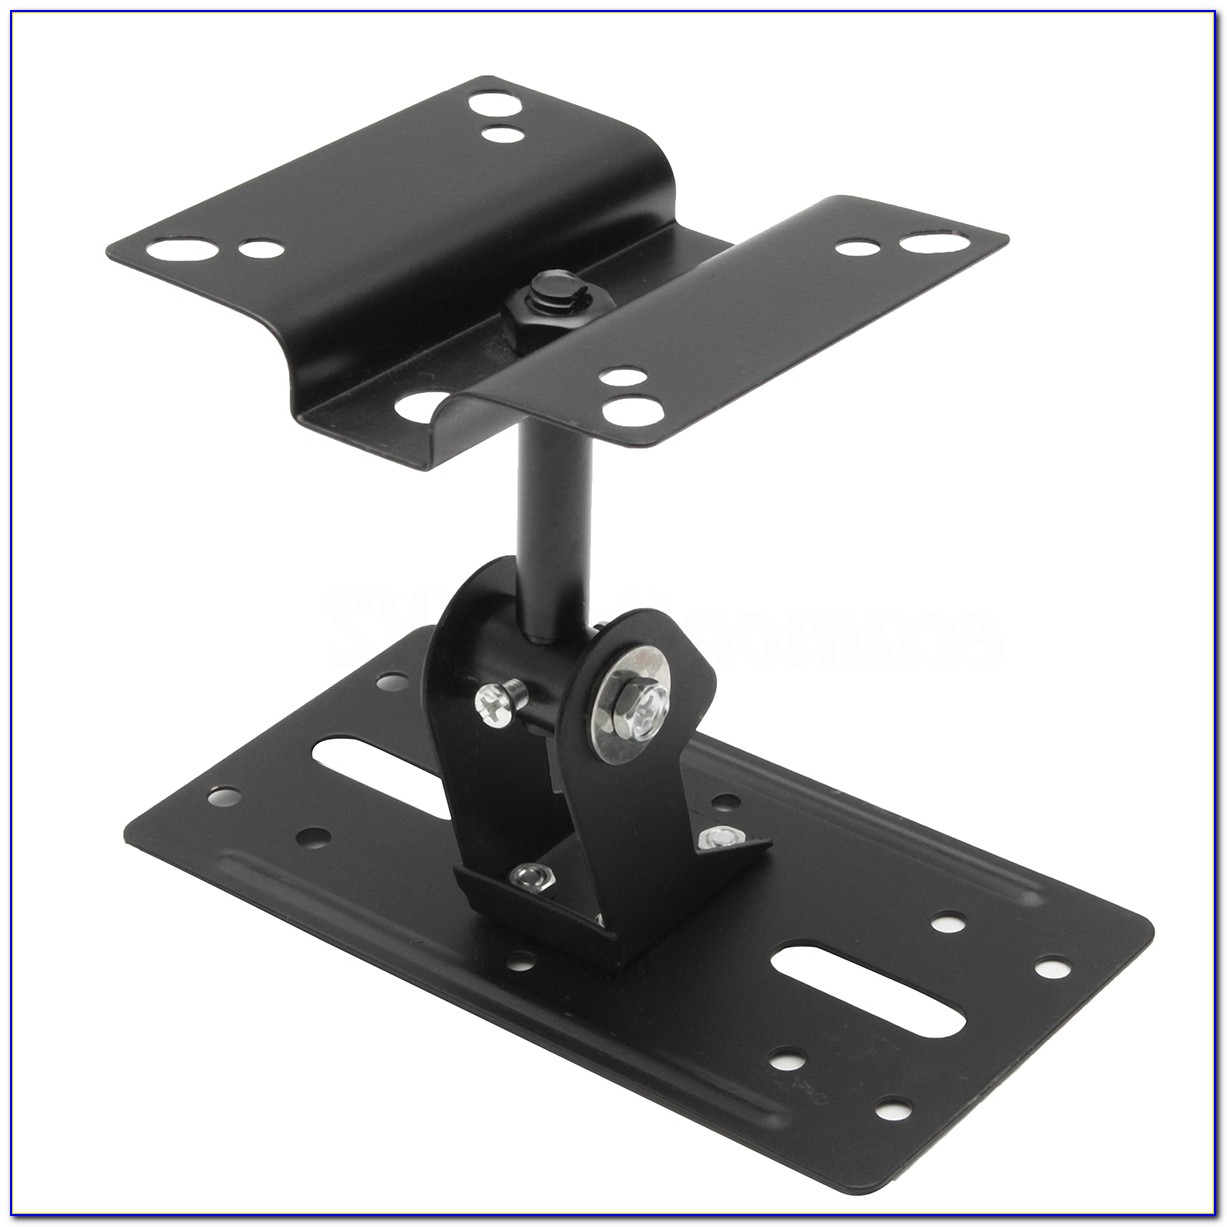 Ceiling Wall Speaker Brackets Mounts Bose